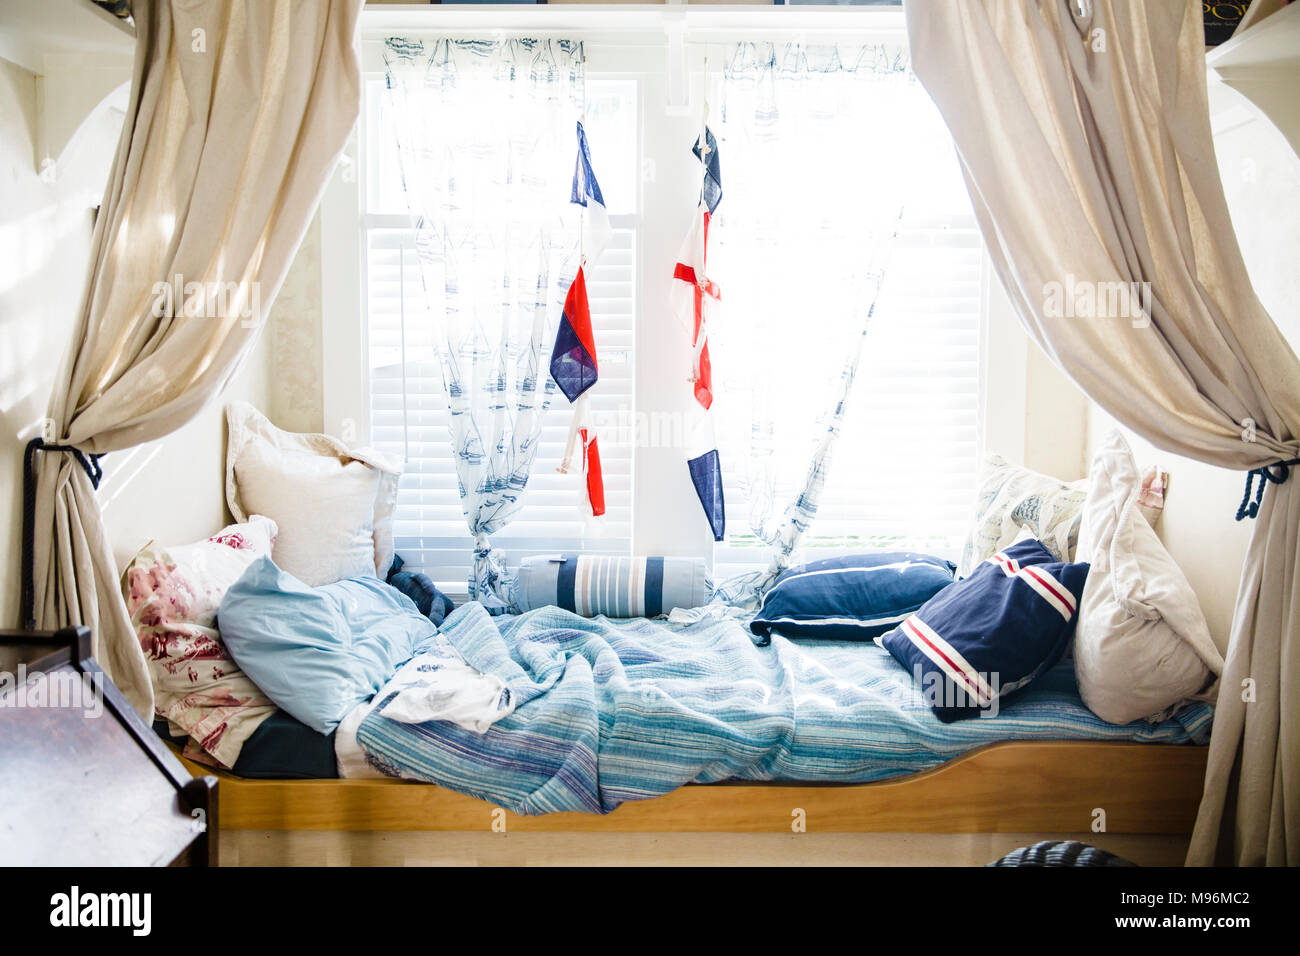 Nautical style child's bed room - Stock Image